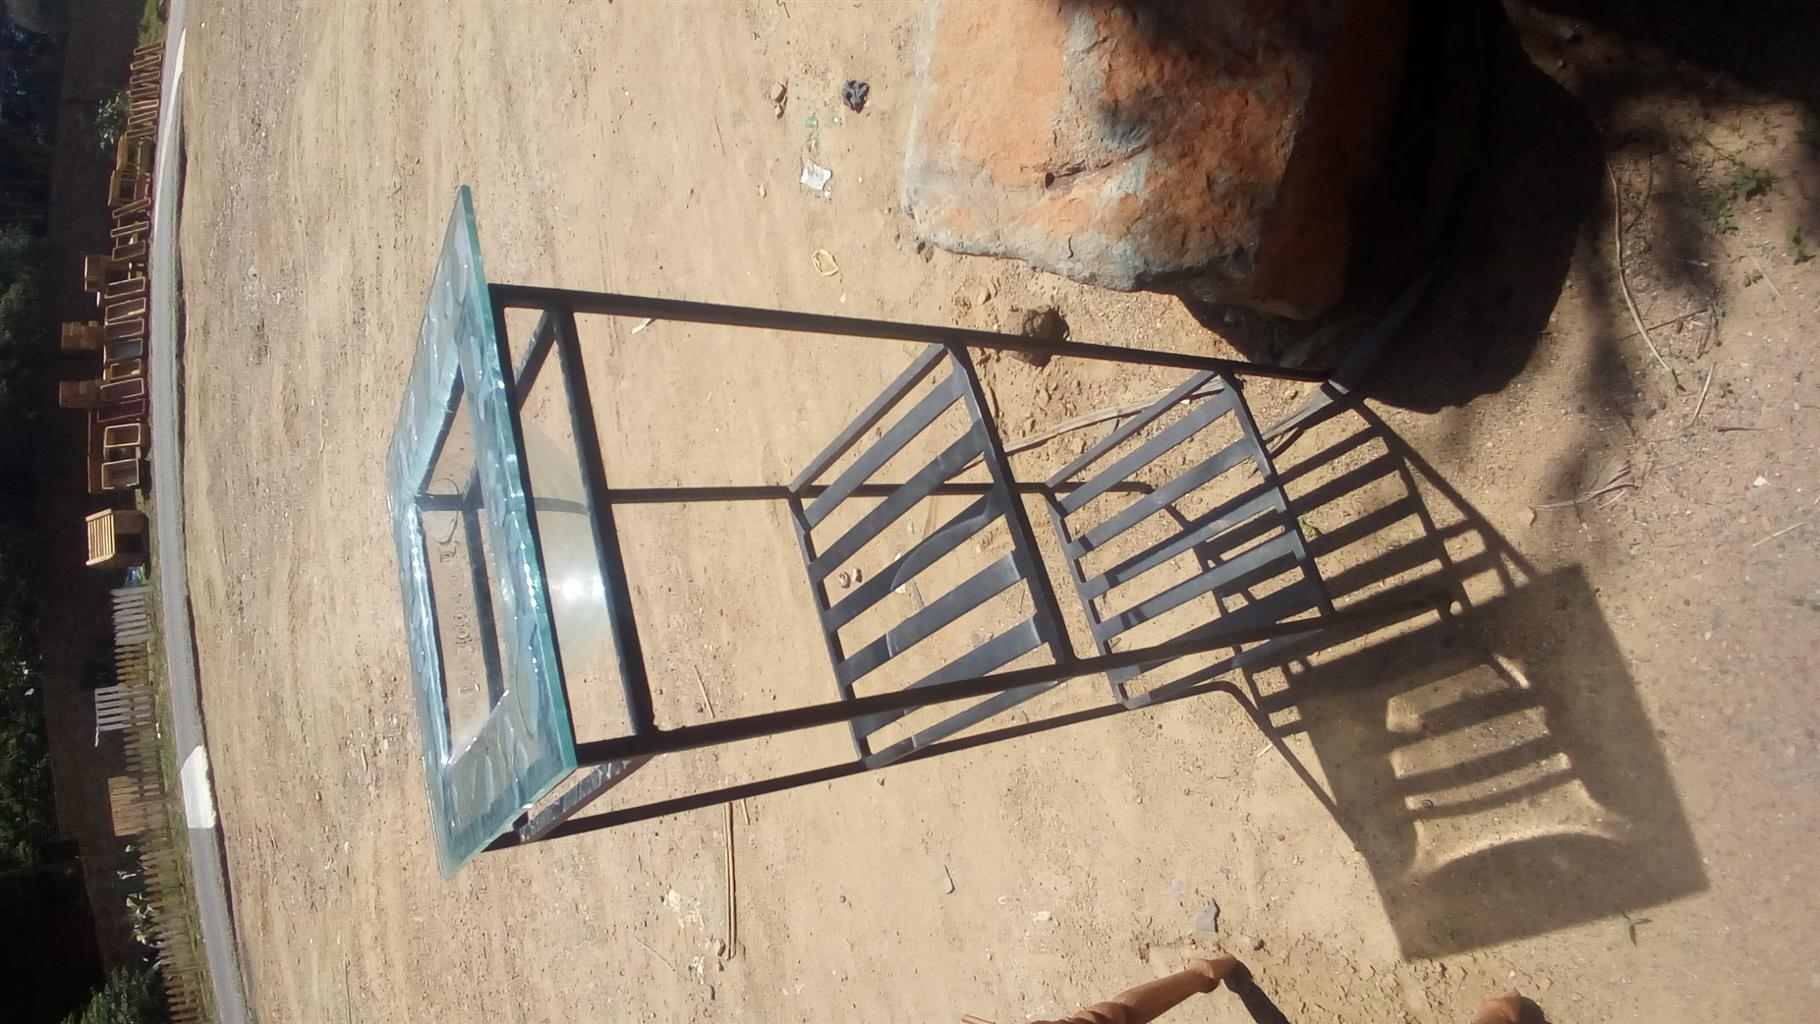 Glass and steel fruit/flower stand